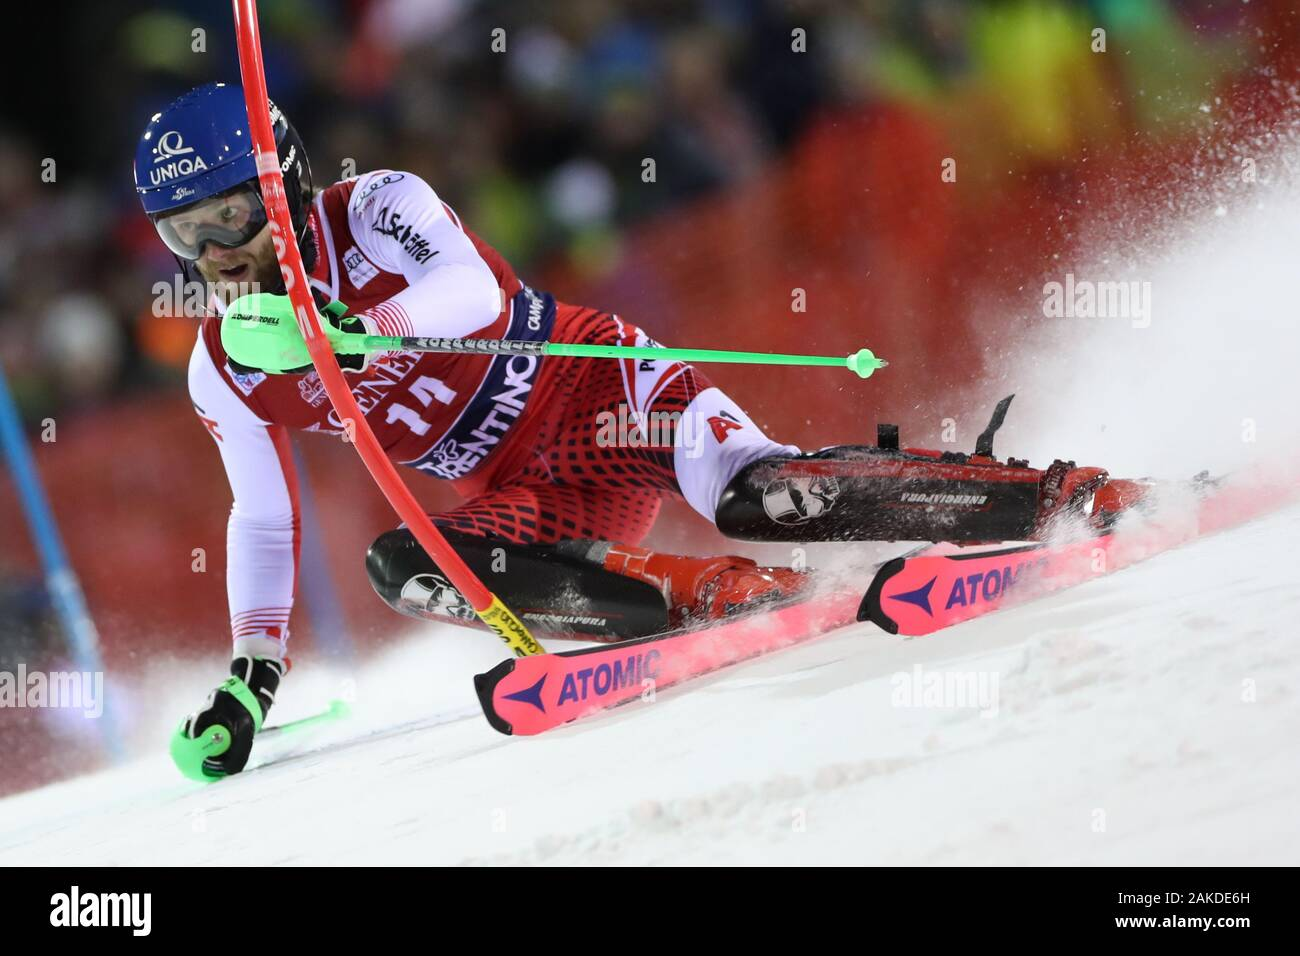 Madonna di Campiglio, Italy. 8th January, 2020. FIS Alpine Ski World Cup Men's Night Slalom in Madonna di Campiglio, Italy on January 8, 2020, Marco Schwarz (AUT) in action. Photo: Pierre Teyssot/Espa-Images Credit: European Sports Photographic Agency/Alamy Live News Stock Photo